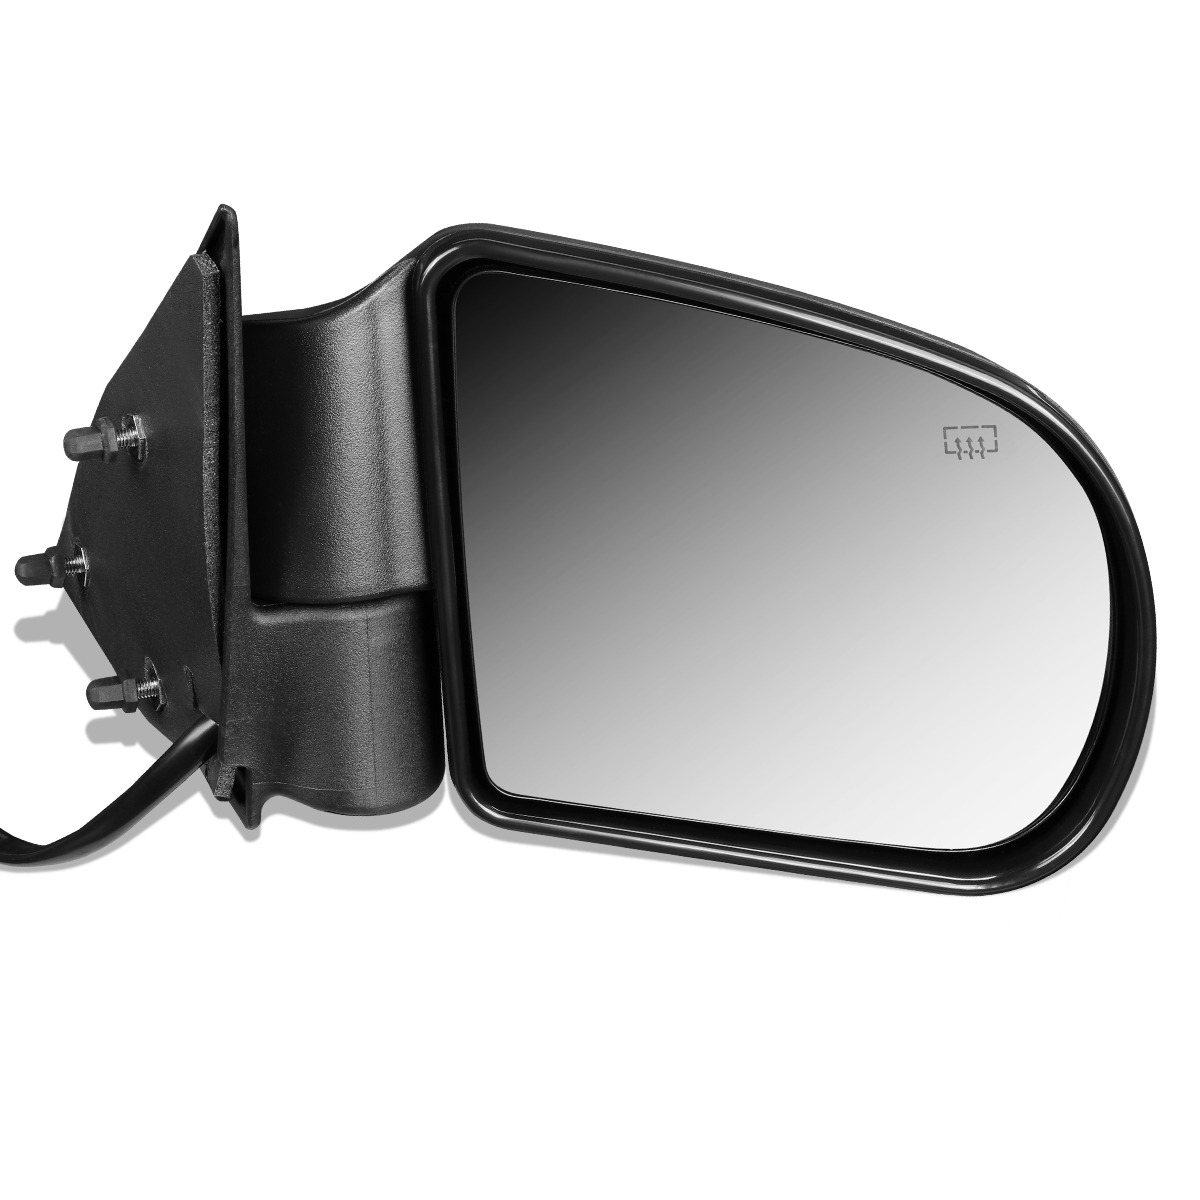 Chevy S10 Pickup Truck Power Heated Black Rear View Mirror Right Passenger Side